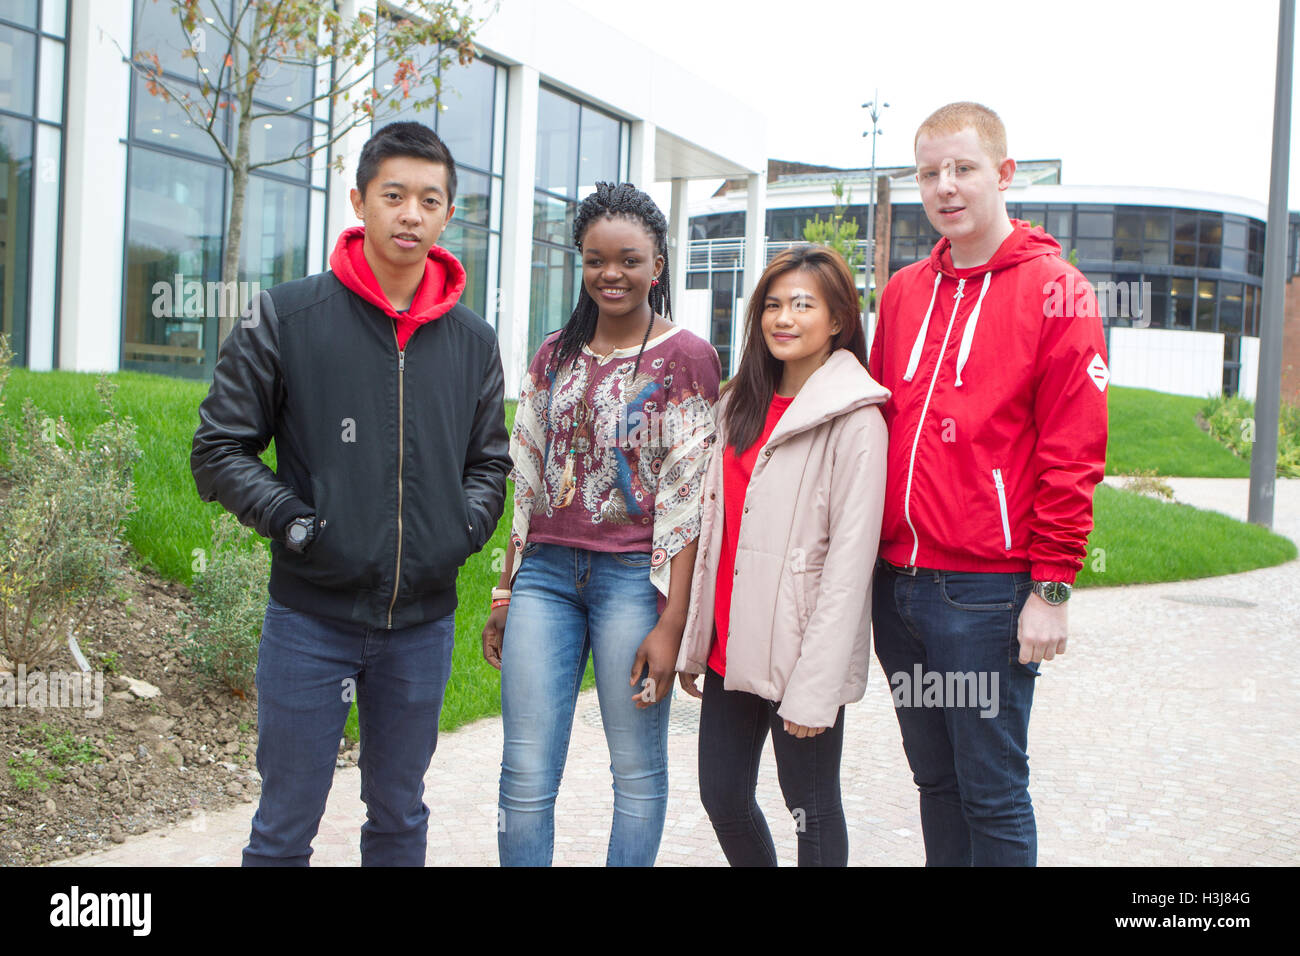 Diverse ethnic mix of young people - Stock Image